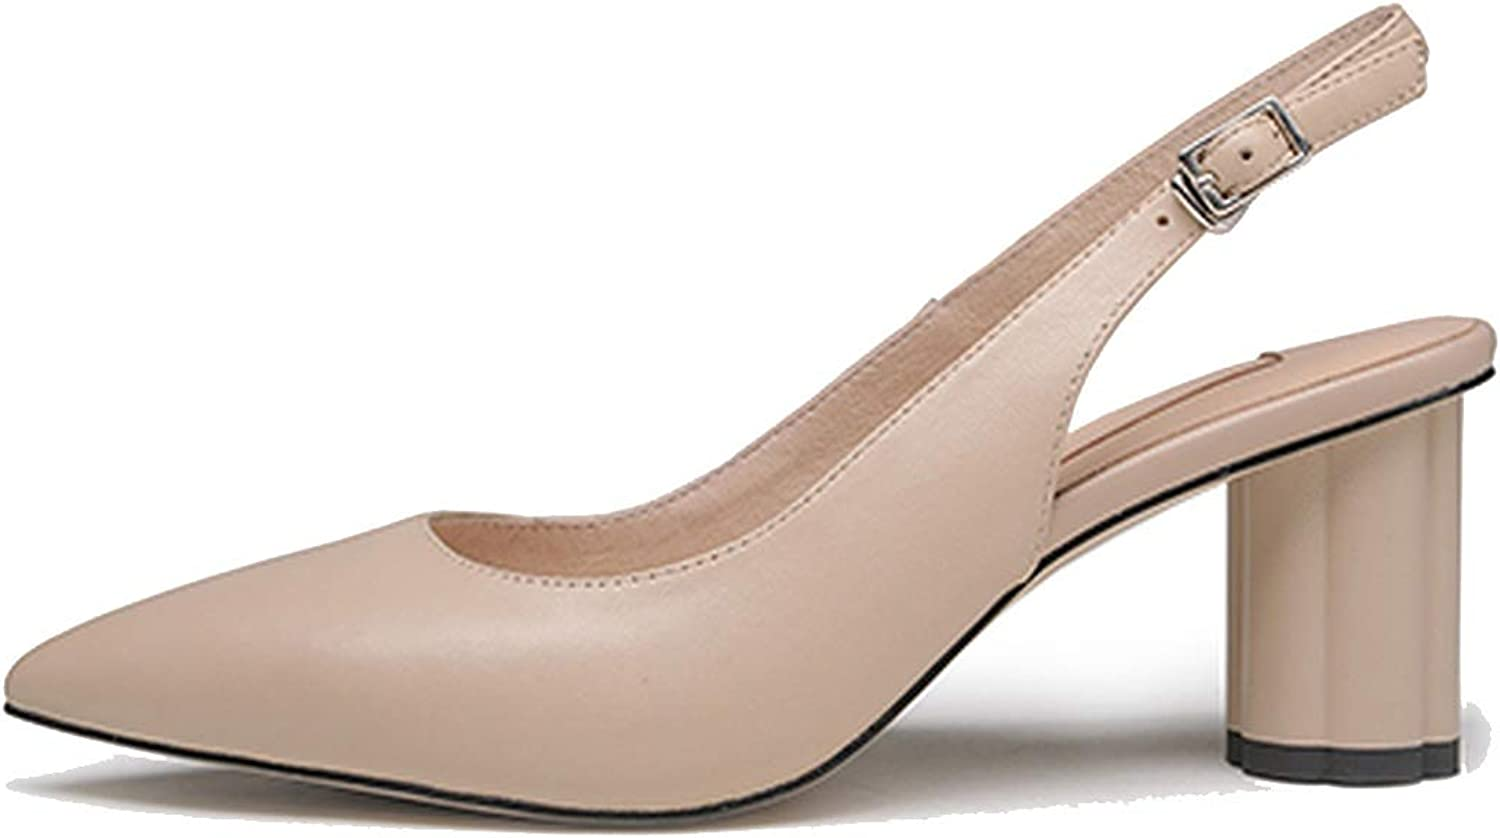 Pumps Spring Green Pointed Toe Handmade Round Heels shoes Woman Party Lady Pumps Nude,6.5